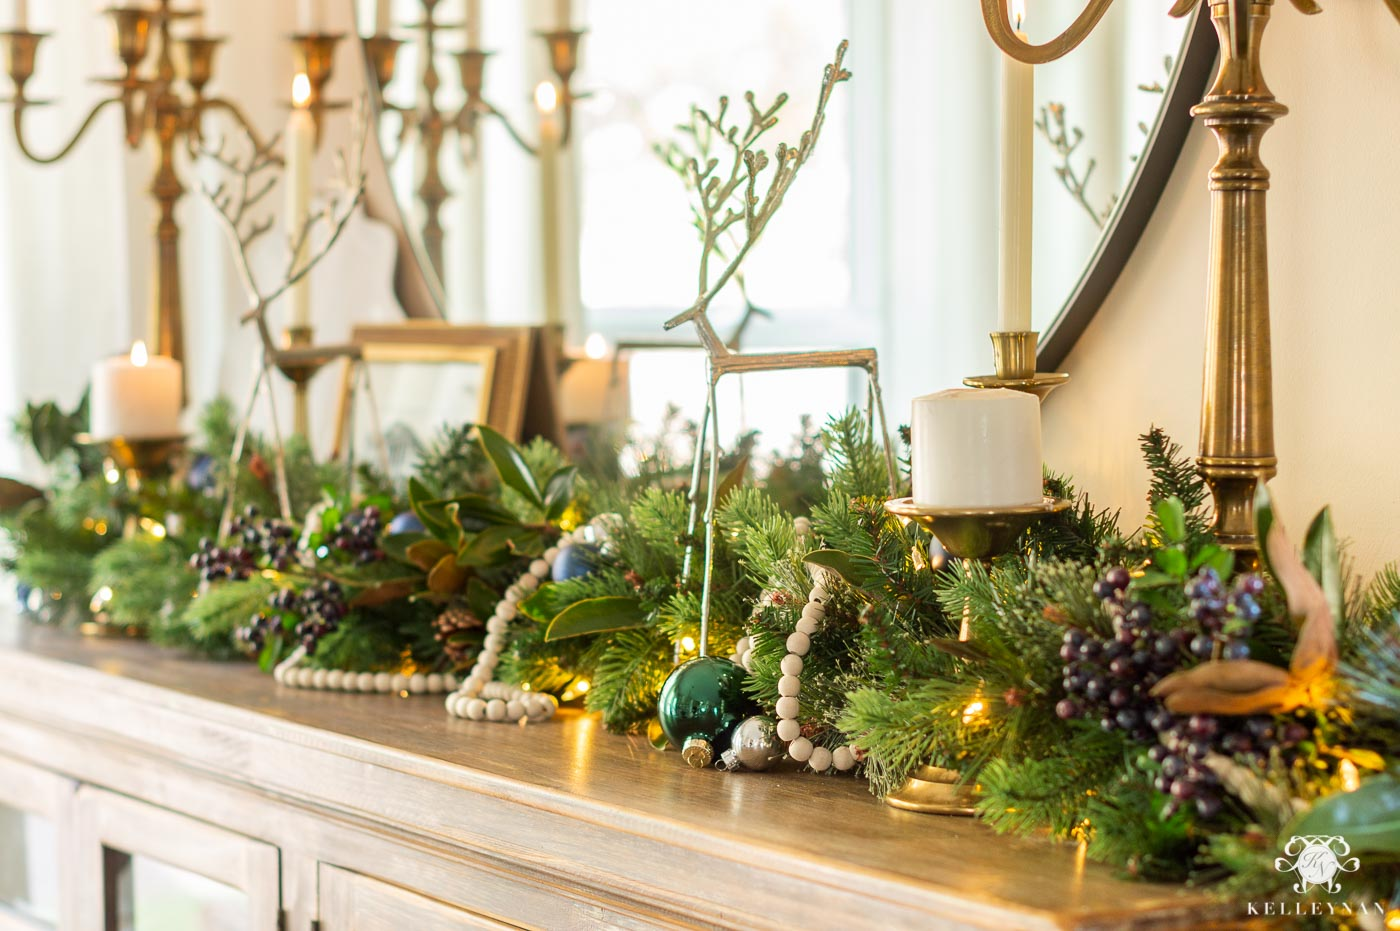 Ideas for Sideboard Greenery with Wood Bead Garland